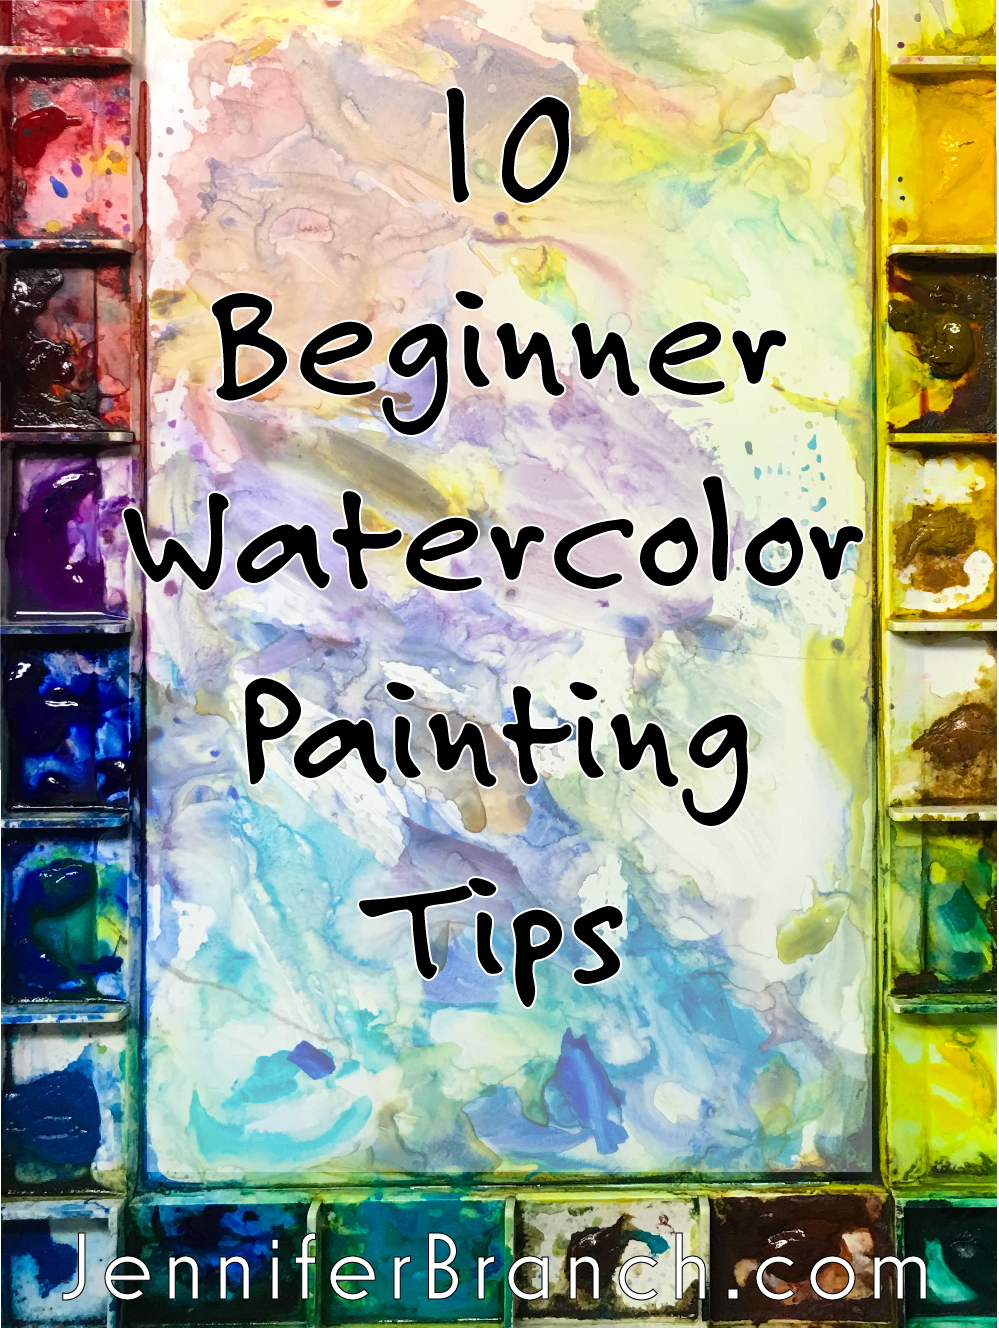 10 Beginner Watercolor Painting Tips